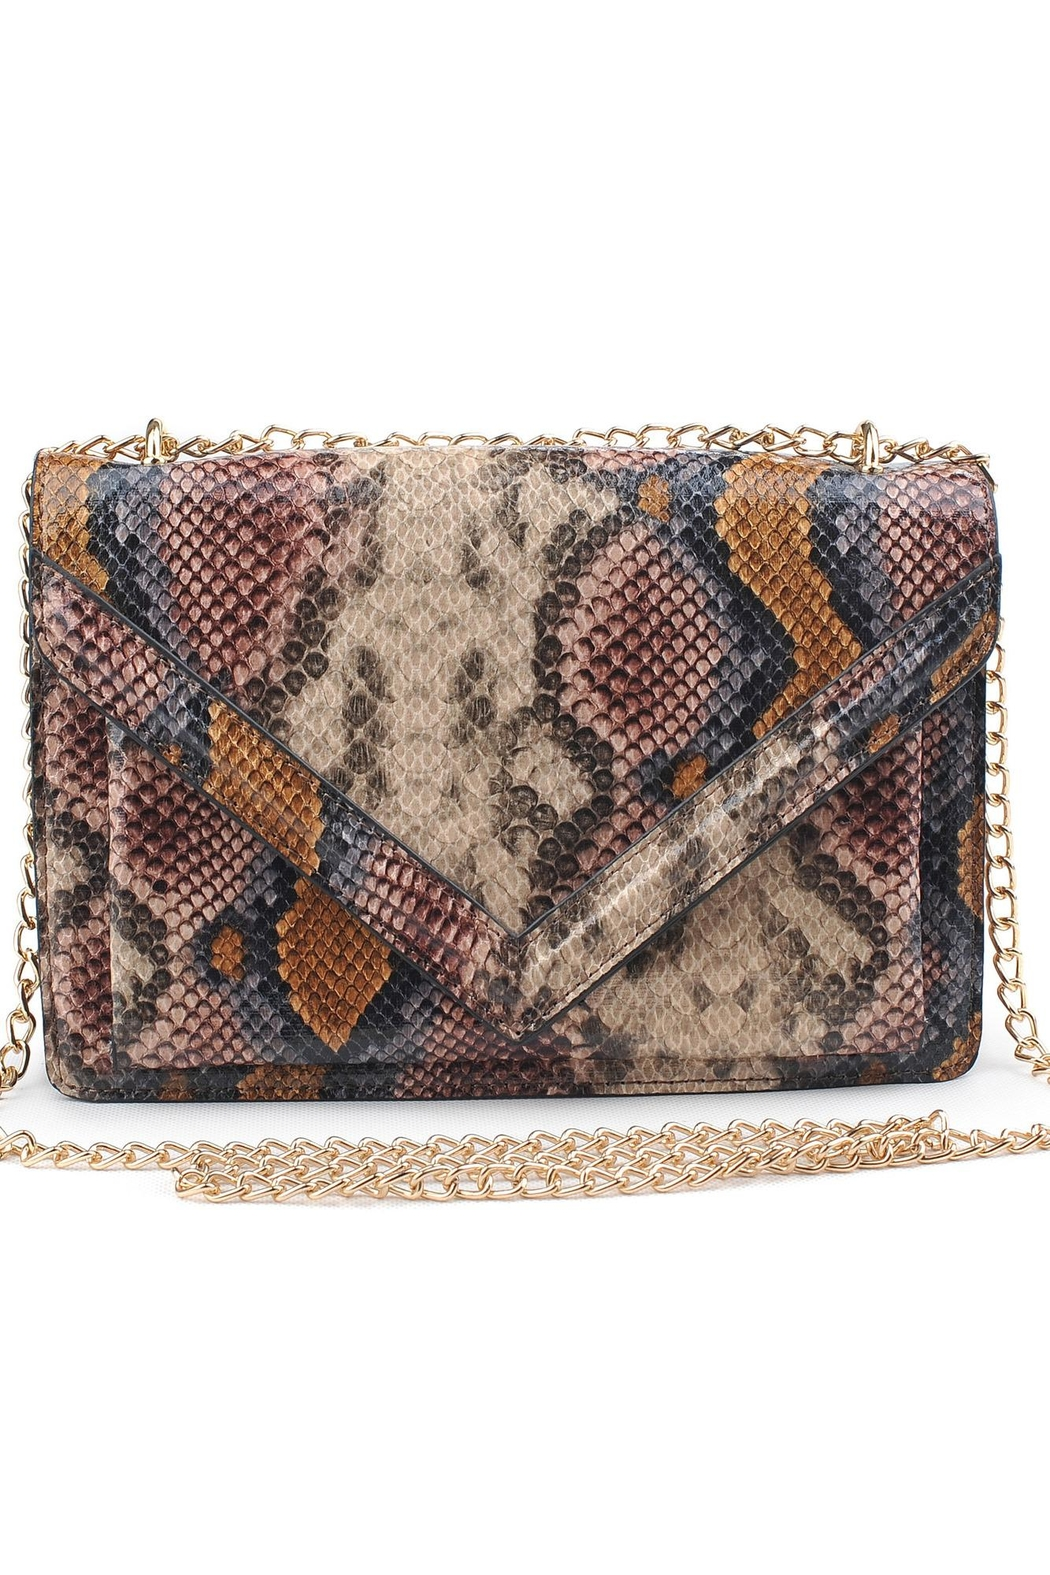 Urban Expressions Adalynn Python Bag - Front Cropped Image